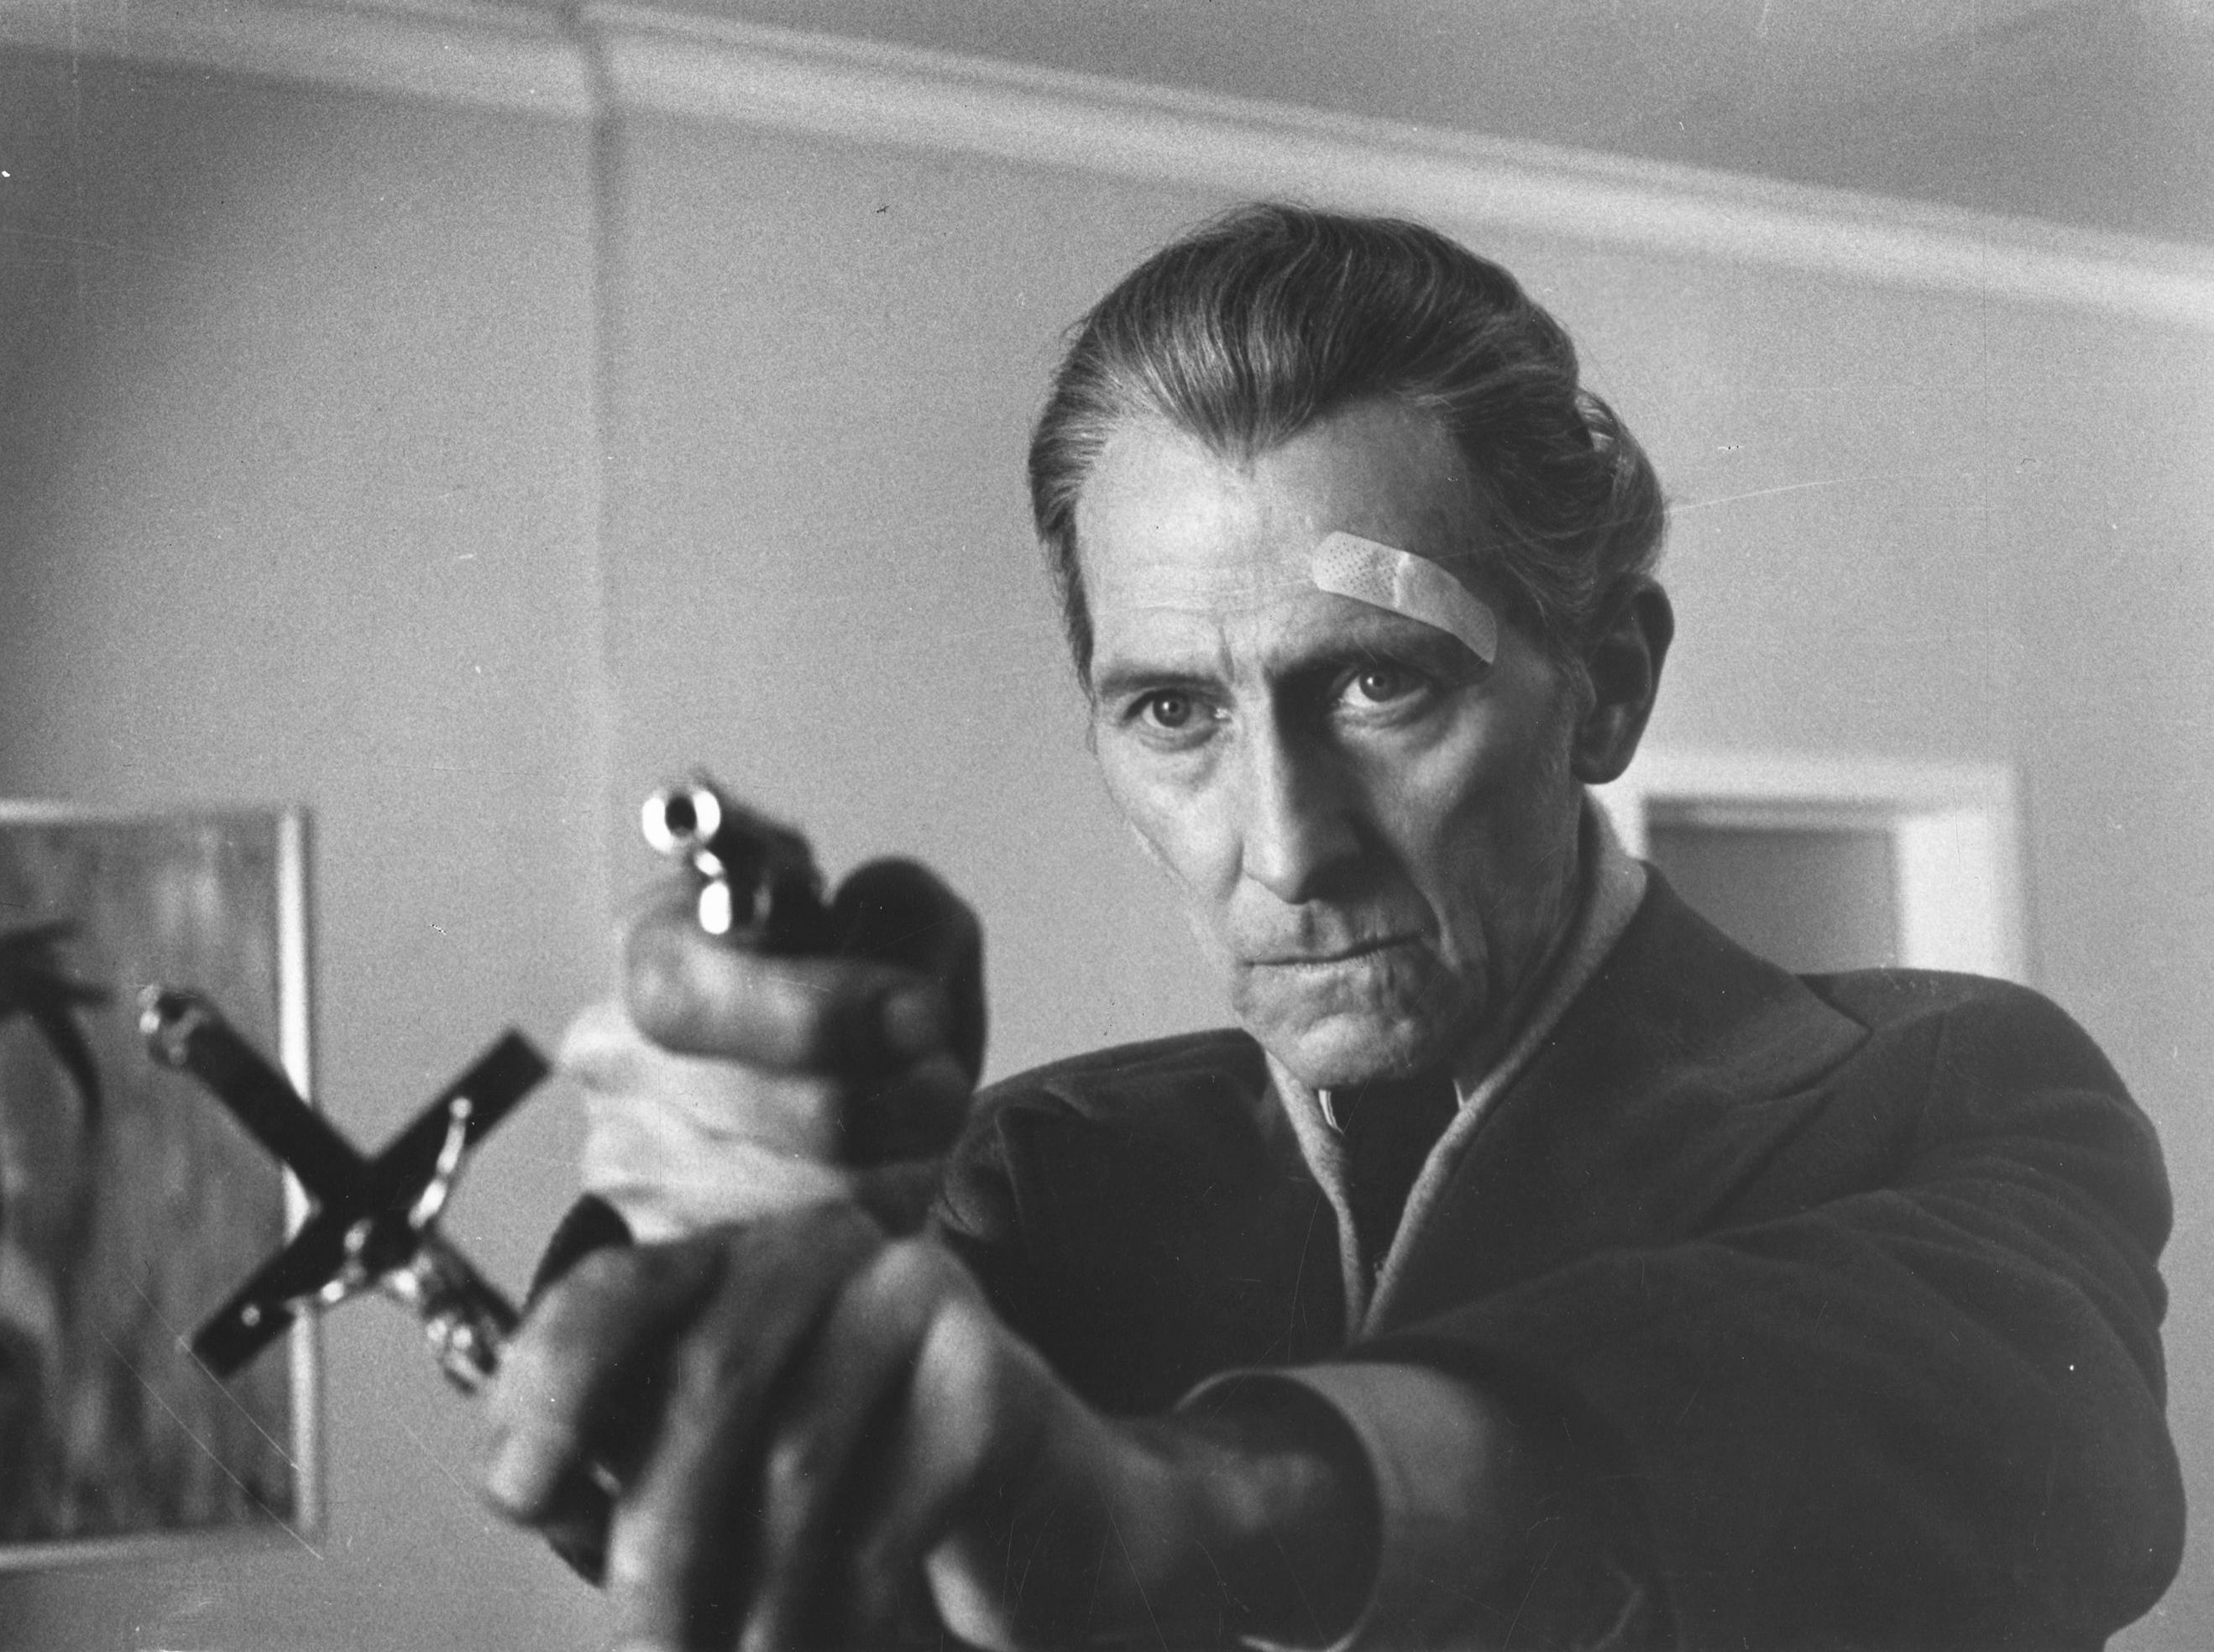 Peter Cushing as Lorrimer Van Helsing in The Satanic Rites of Dracula (1973)